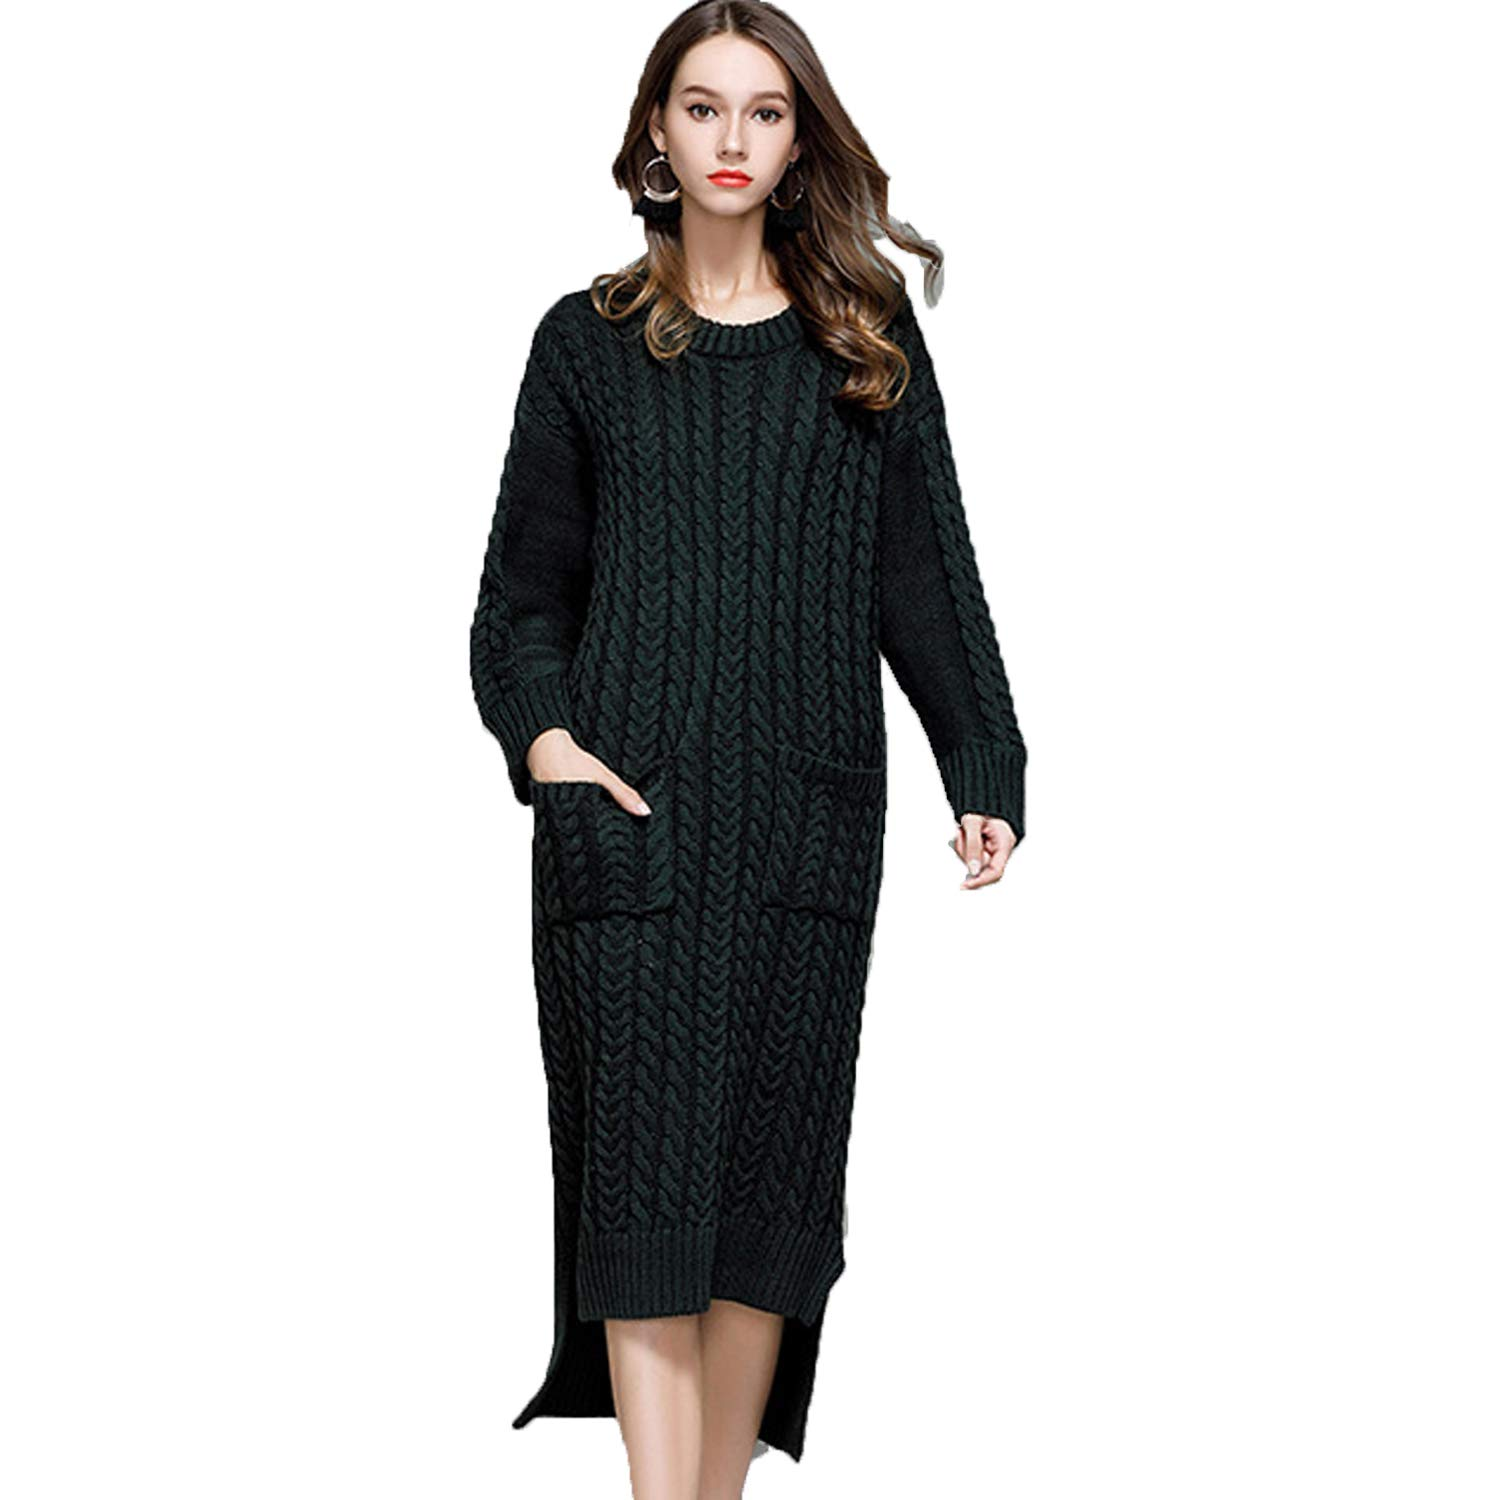 Pnfly Womens Twisted Long Sleeve Pullover Sweater Original Design Knit Dress with Pockets